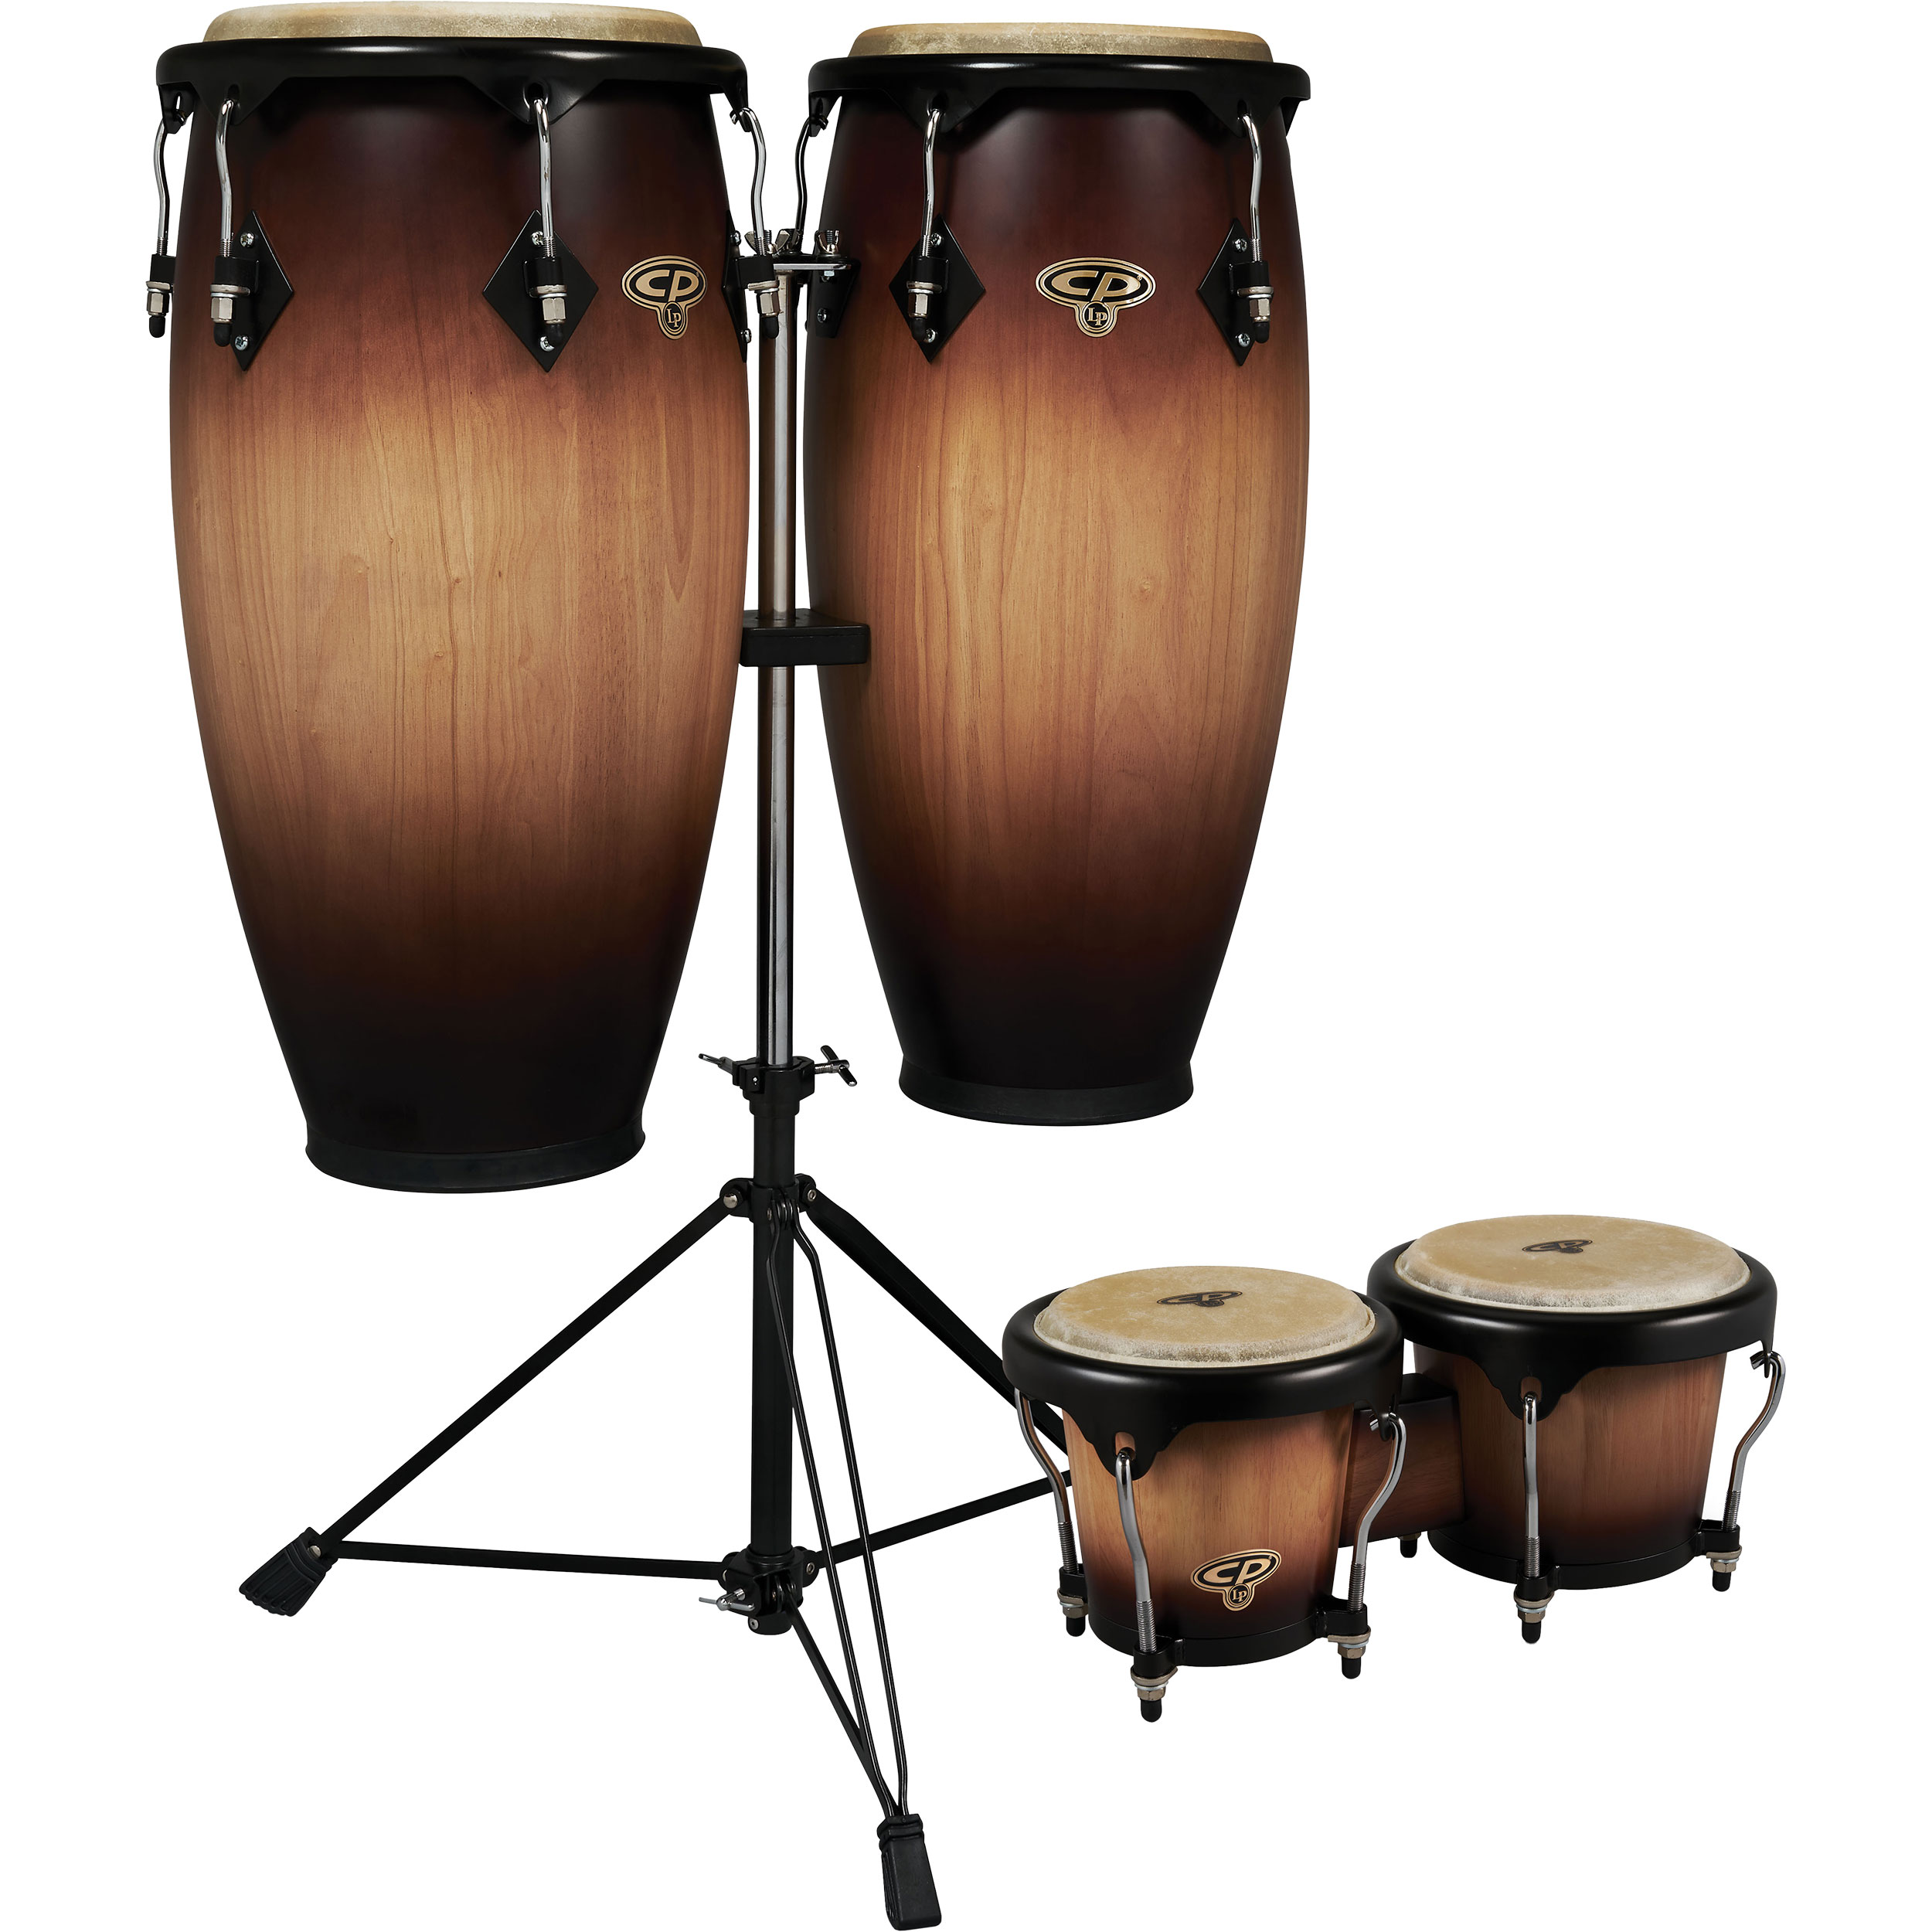 """LP 11"""" & 11.75"""" CP Conga Set with Bongos and Double Stand in Walnut Burst"""